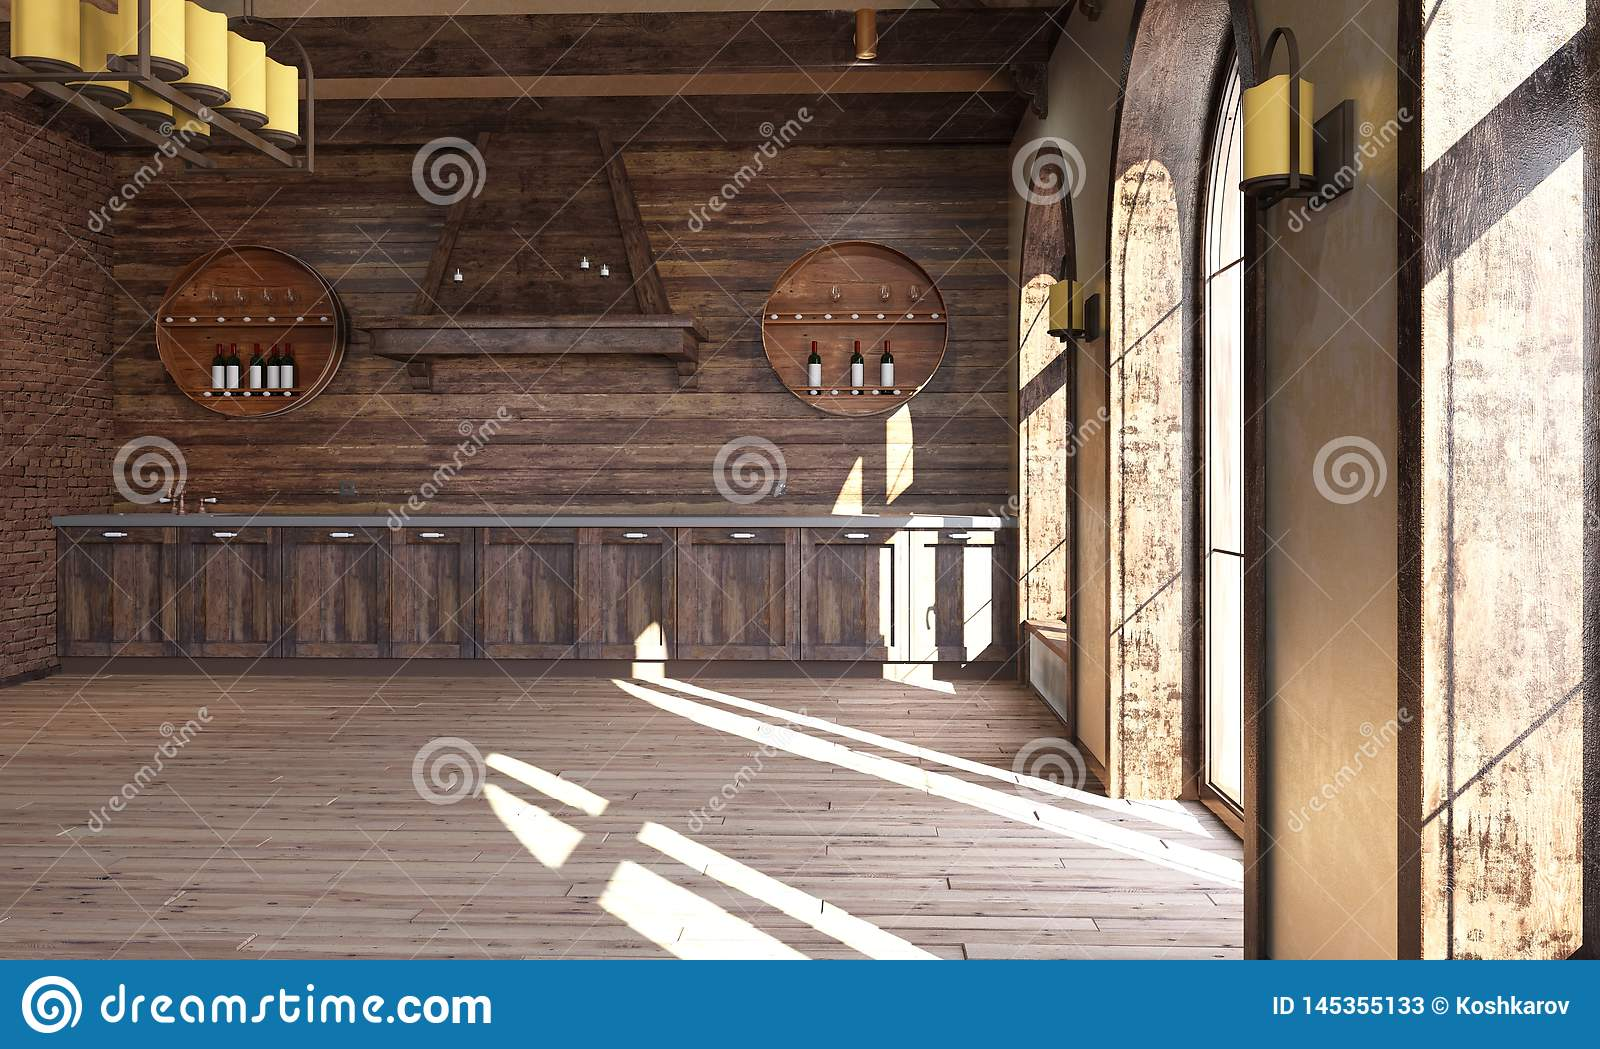 The interior of the kitchen in a rustic style. 3d render. The interior of the kitchen in a rustic style stock photos